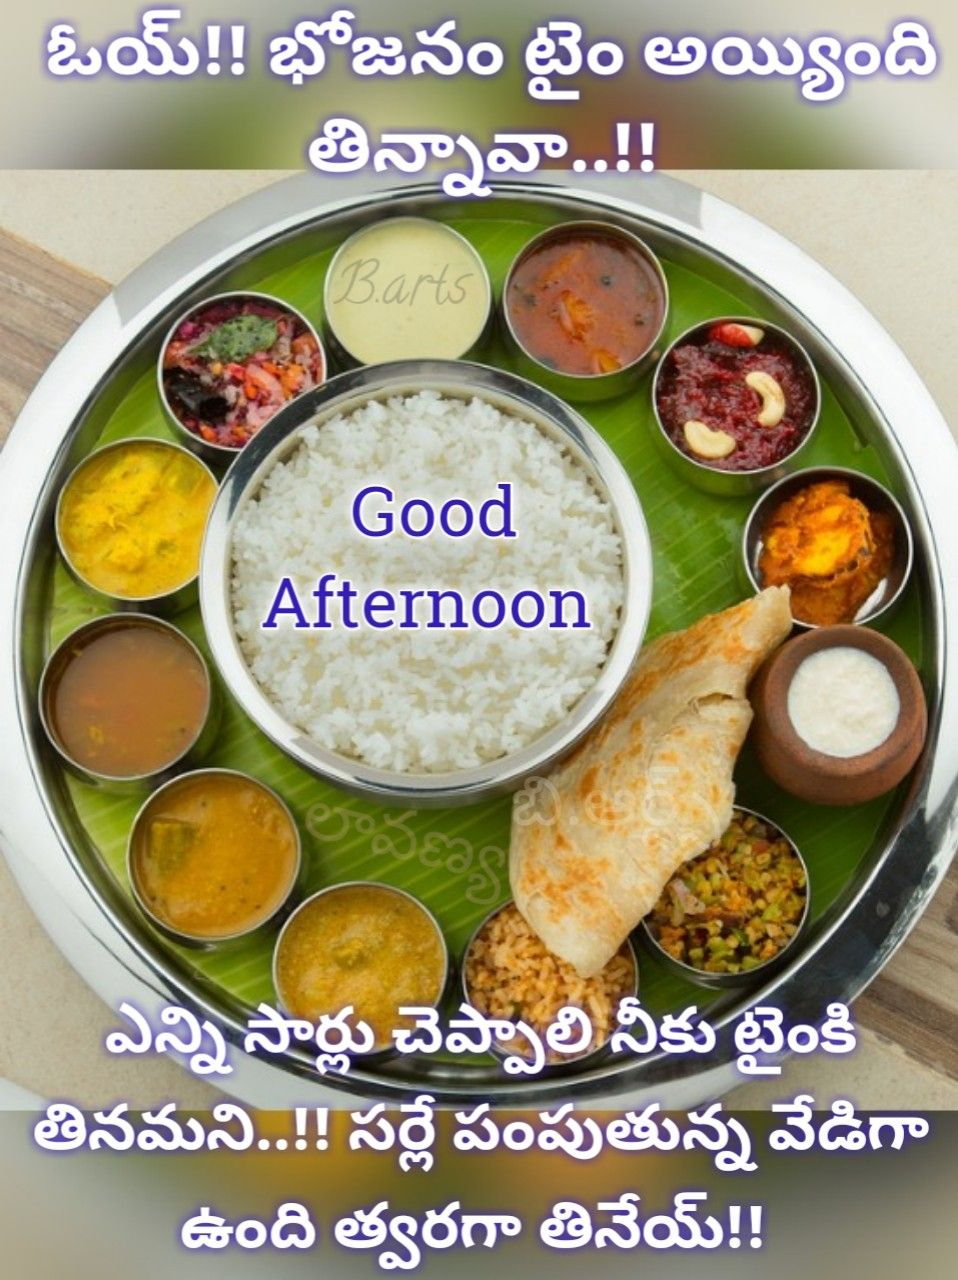 Pin by Raghavendra Murari on Meals Quotes Food dishes